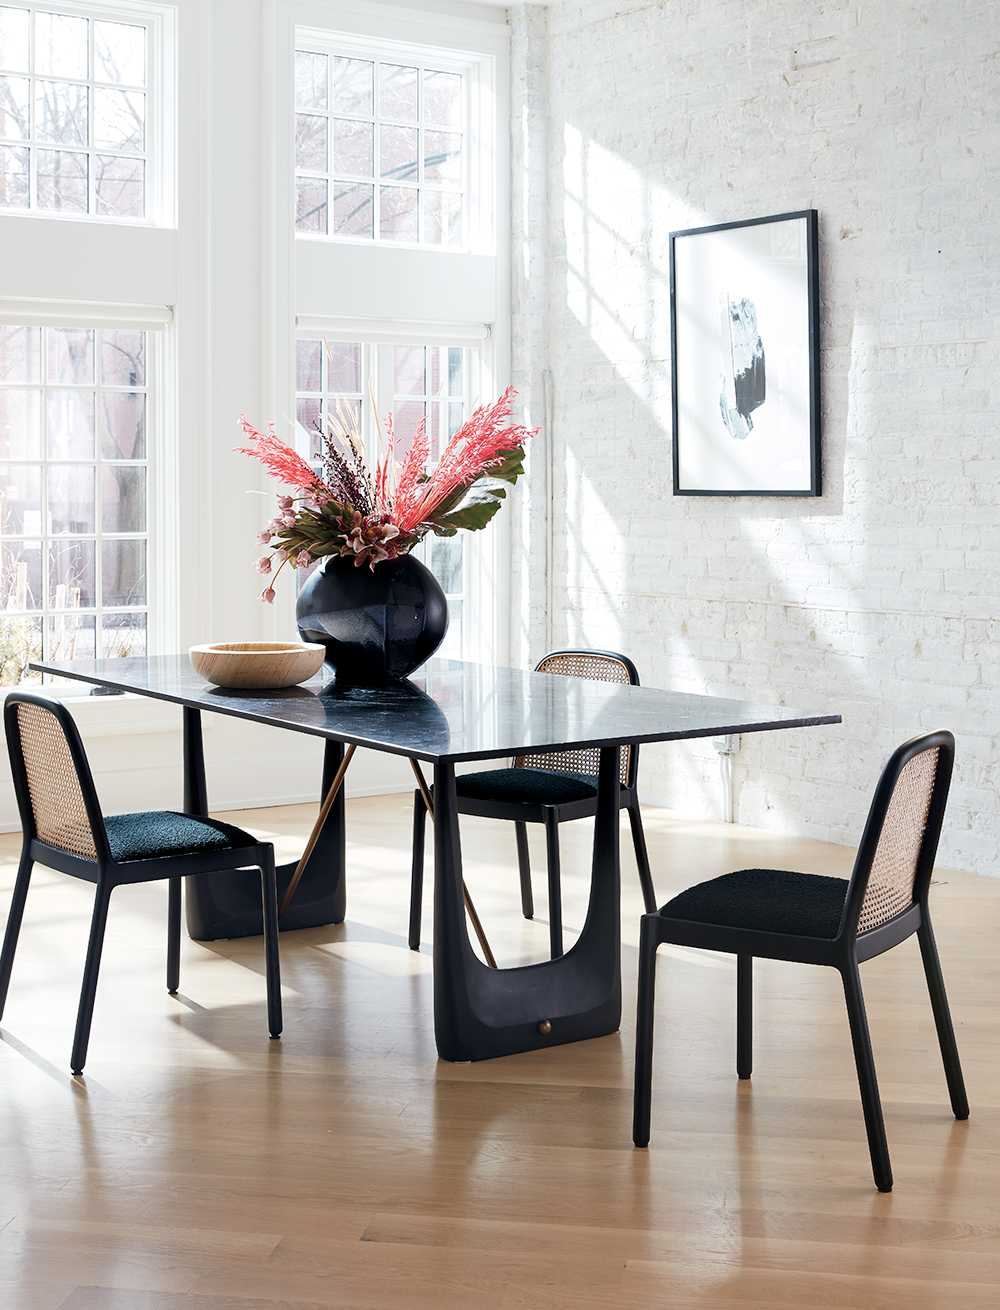 Best Modern Furniture Affordable Unique Edgy Cb2 Modern 400 x 300